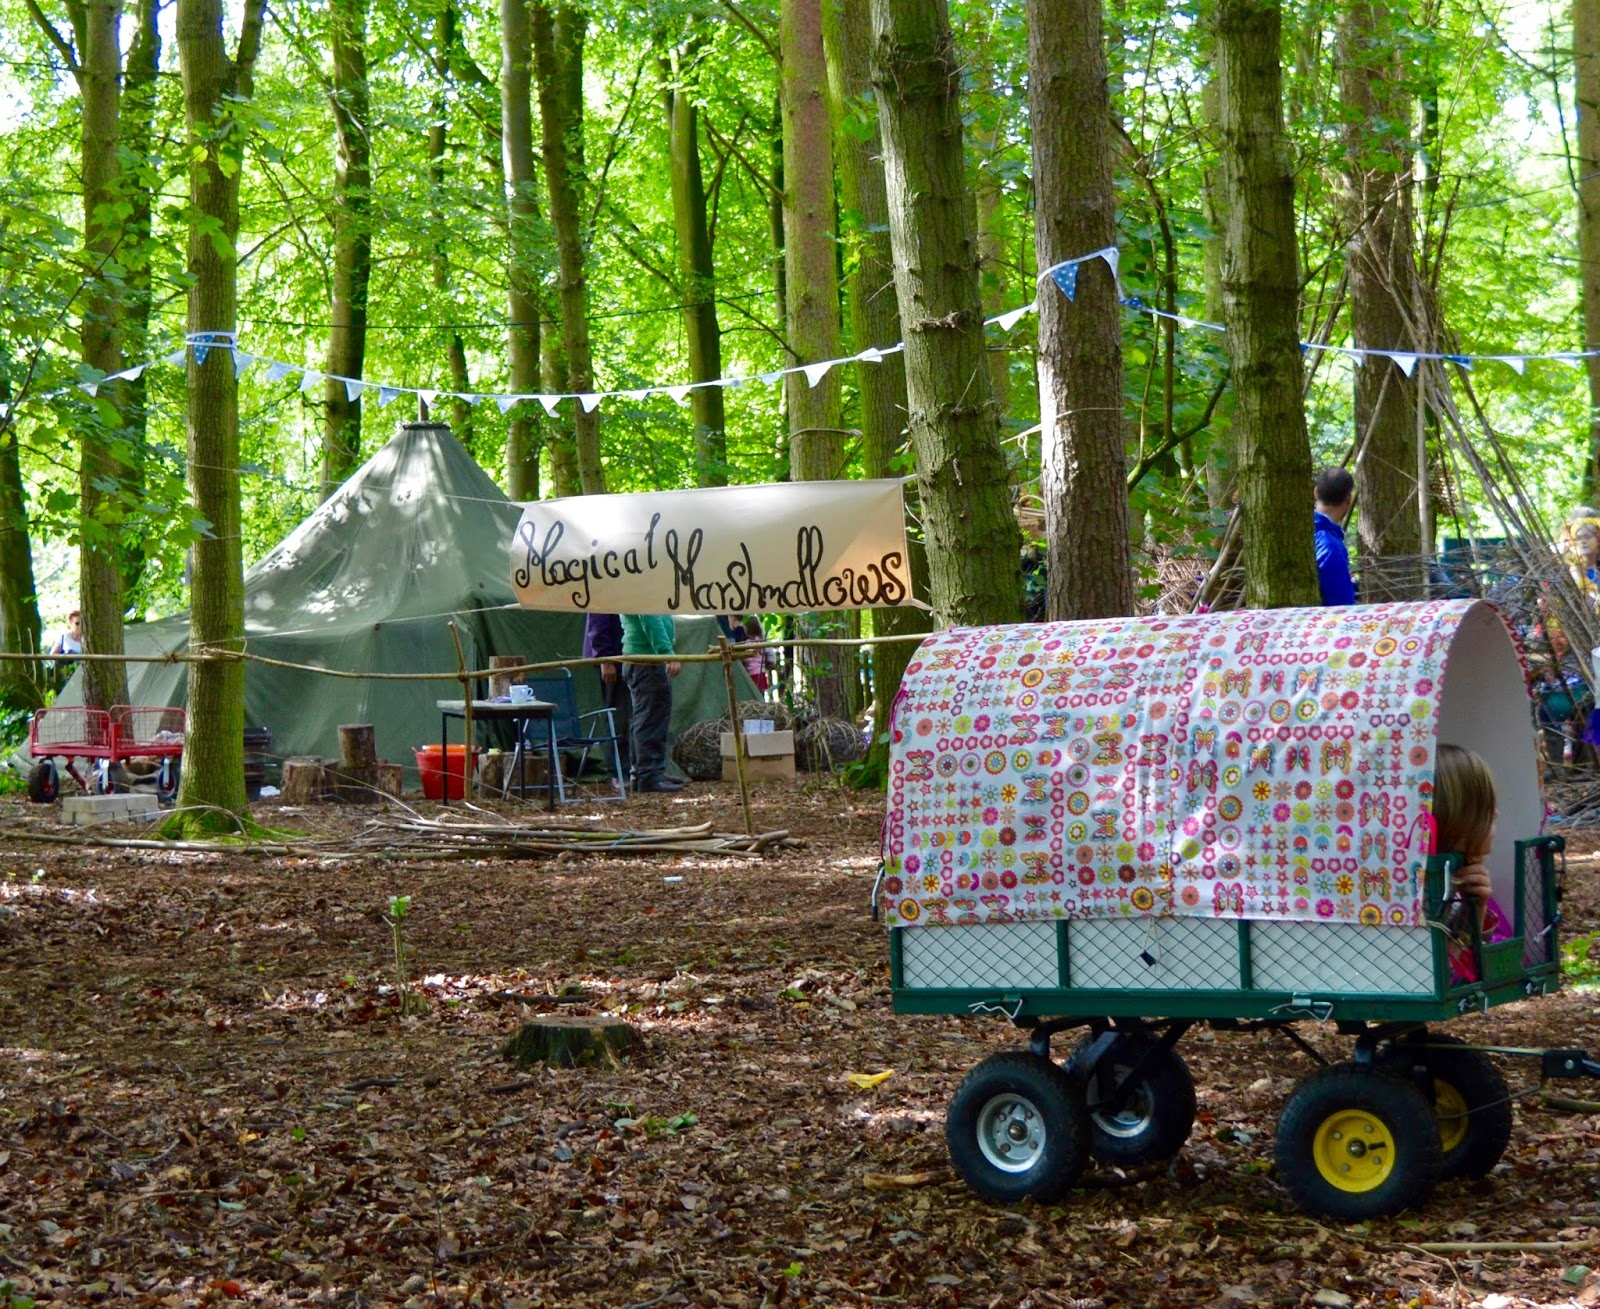 33 Reasons we LOVED the Just So Festival 2016 - spellbound forest